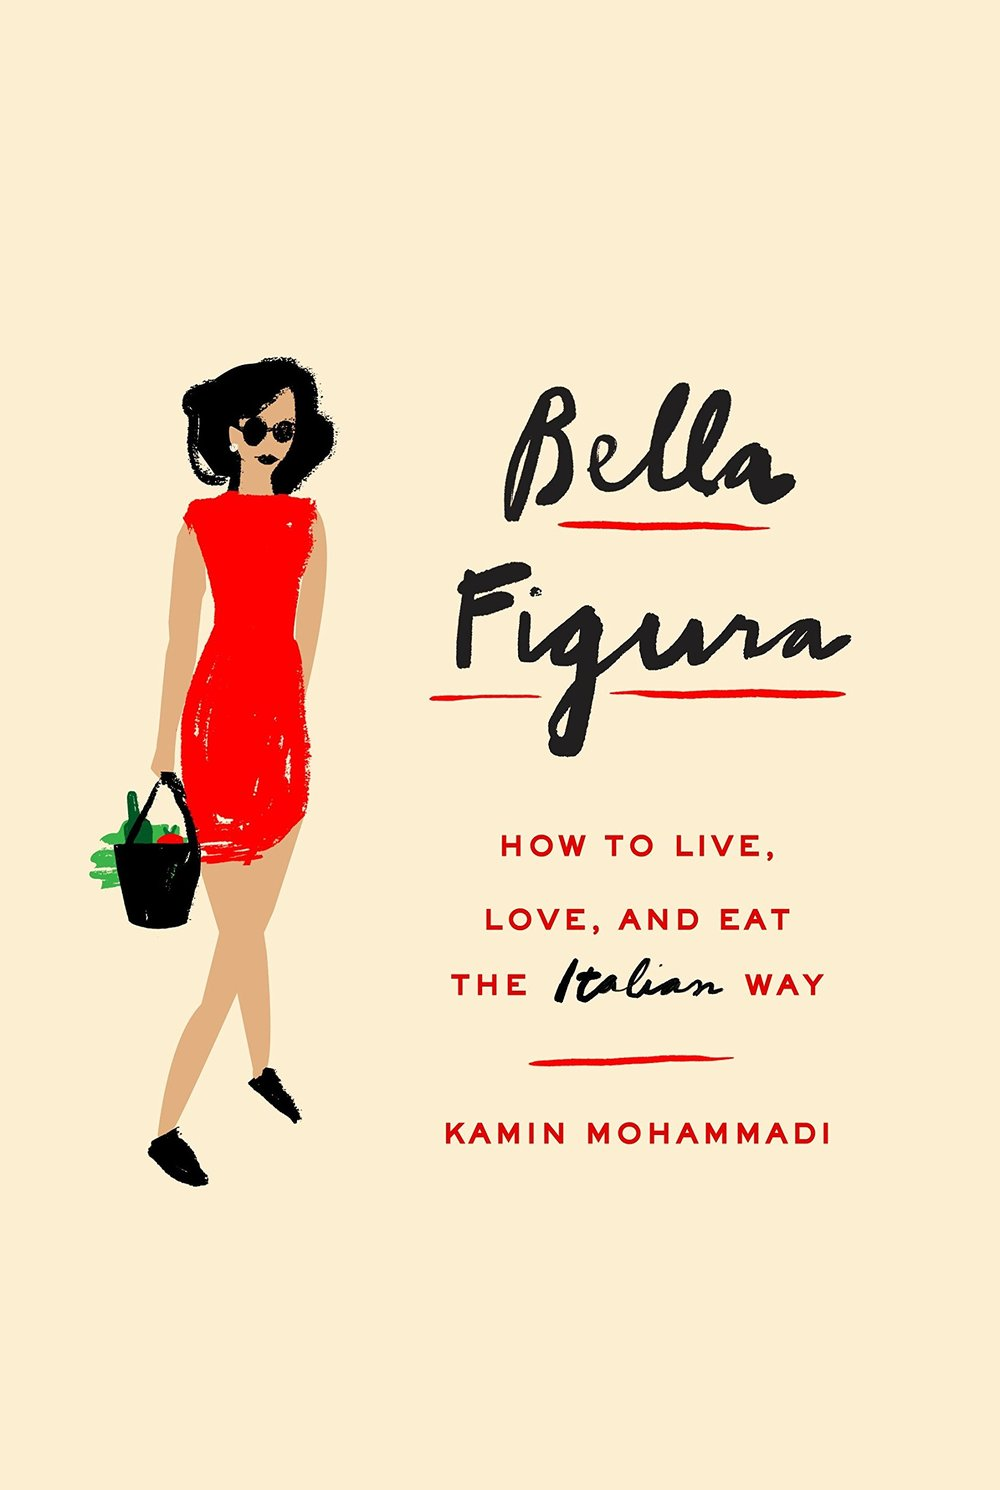 BELLA FIGURA - by Kamin MohammadiKamin Mohammadi, a magazine editor in London, should have been on top of the world. But after heartbreak and loneliness, the stress of her